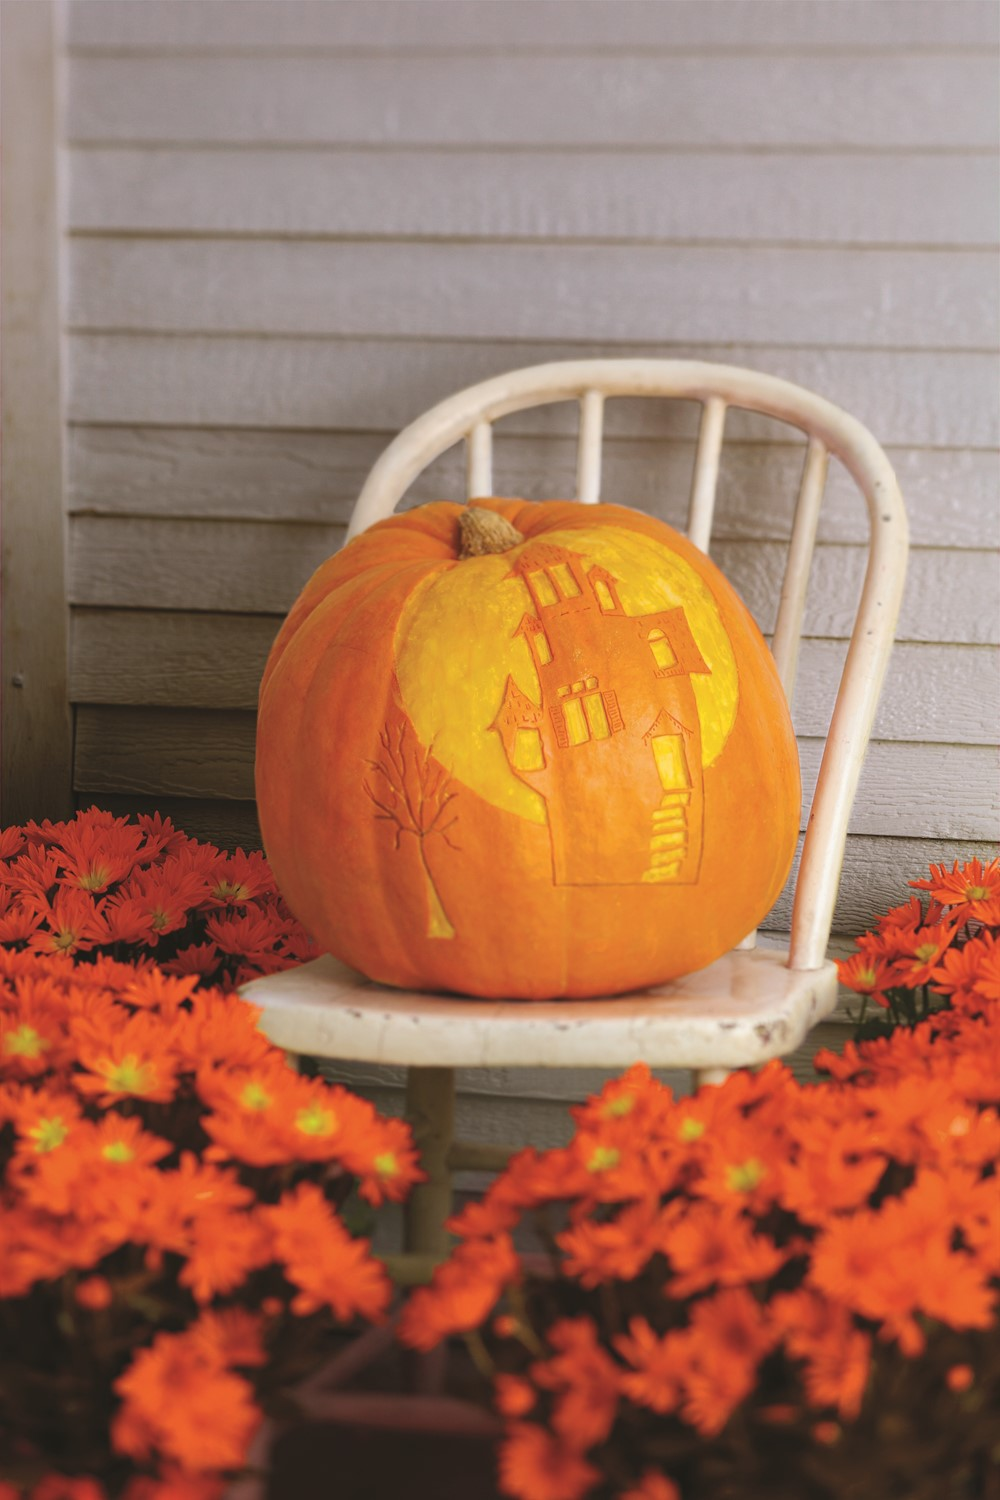 Pumpkin with Positive and Negative Carved Spaces Look Like a House